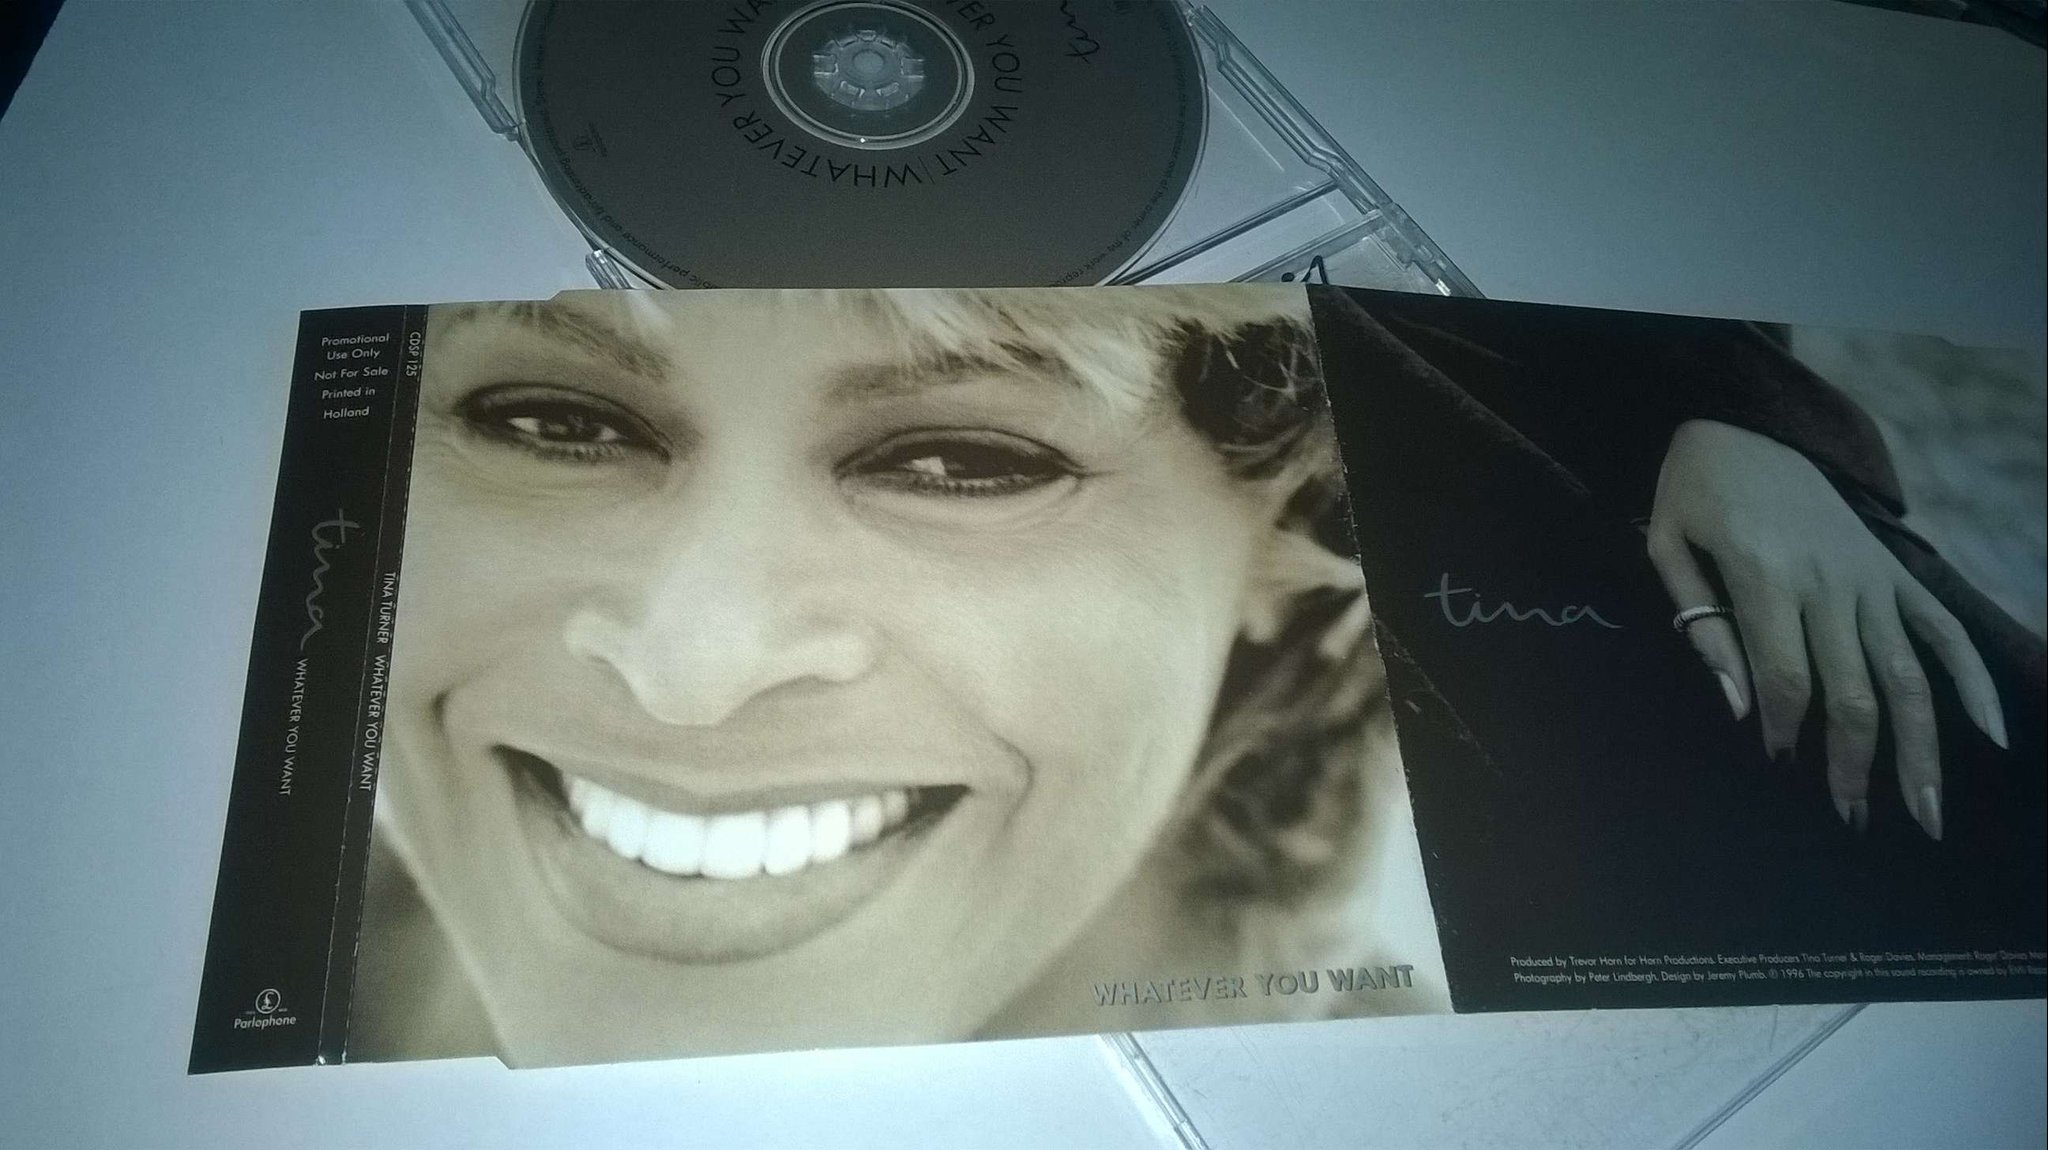 Tina Turner - Whatever you want, CD, Single, Promo